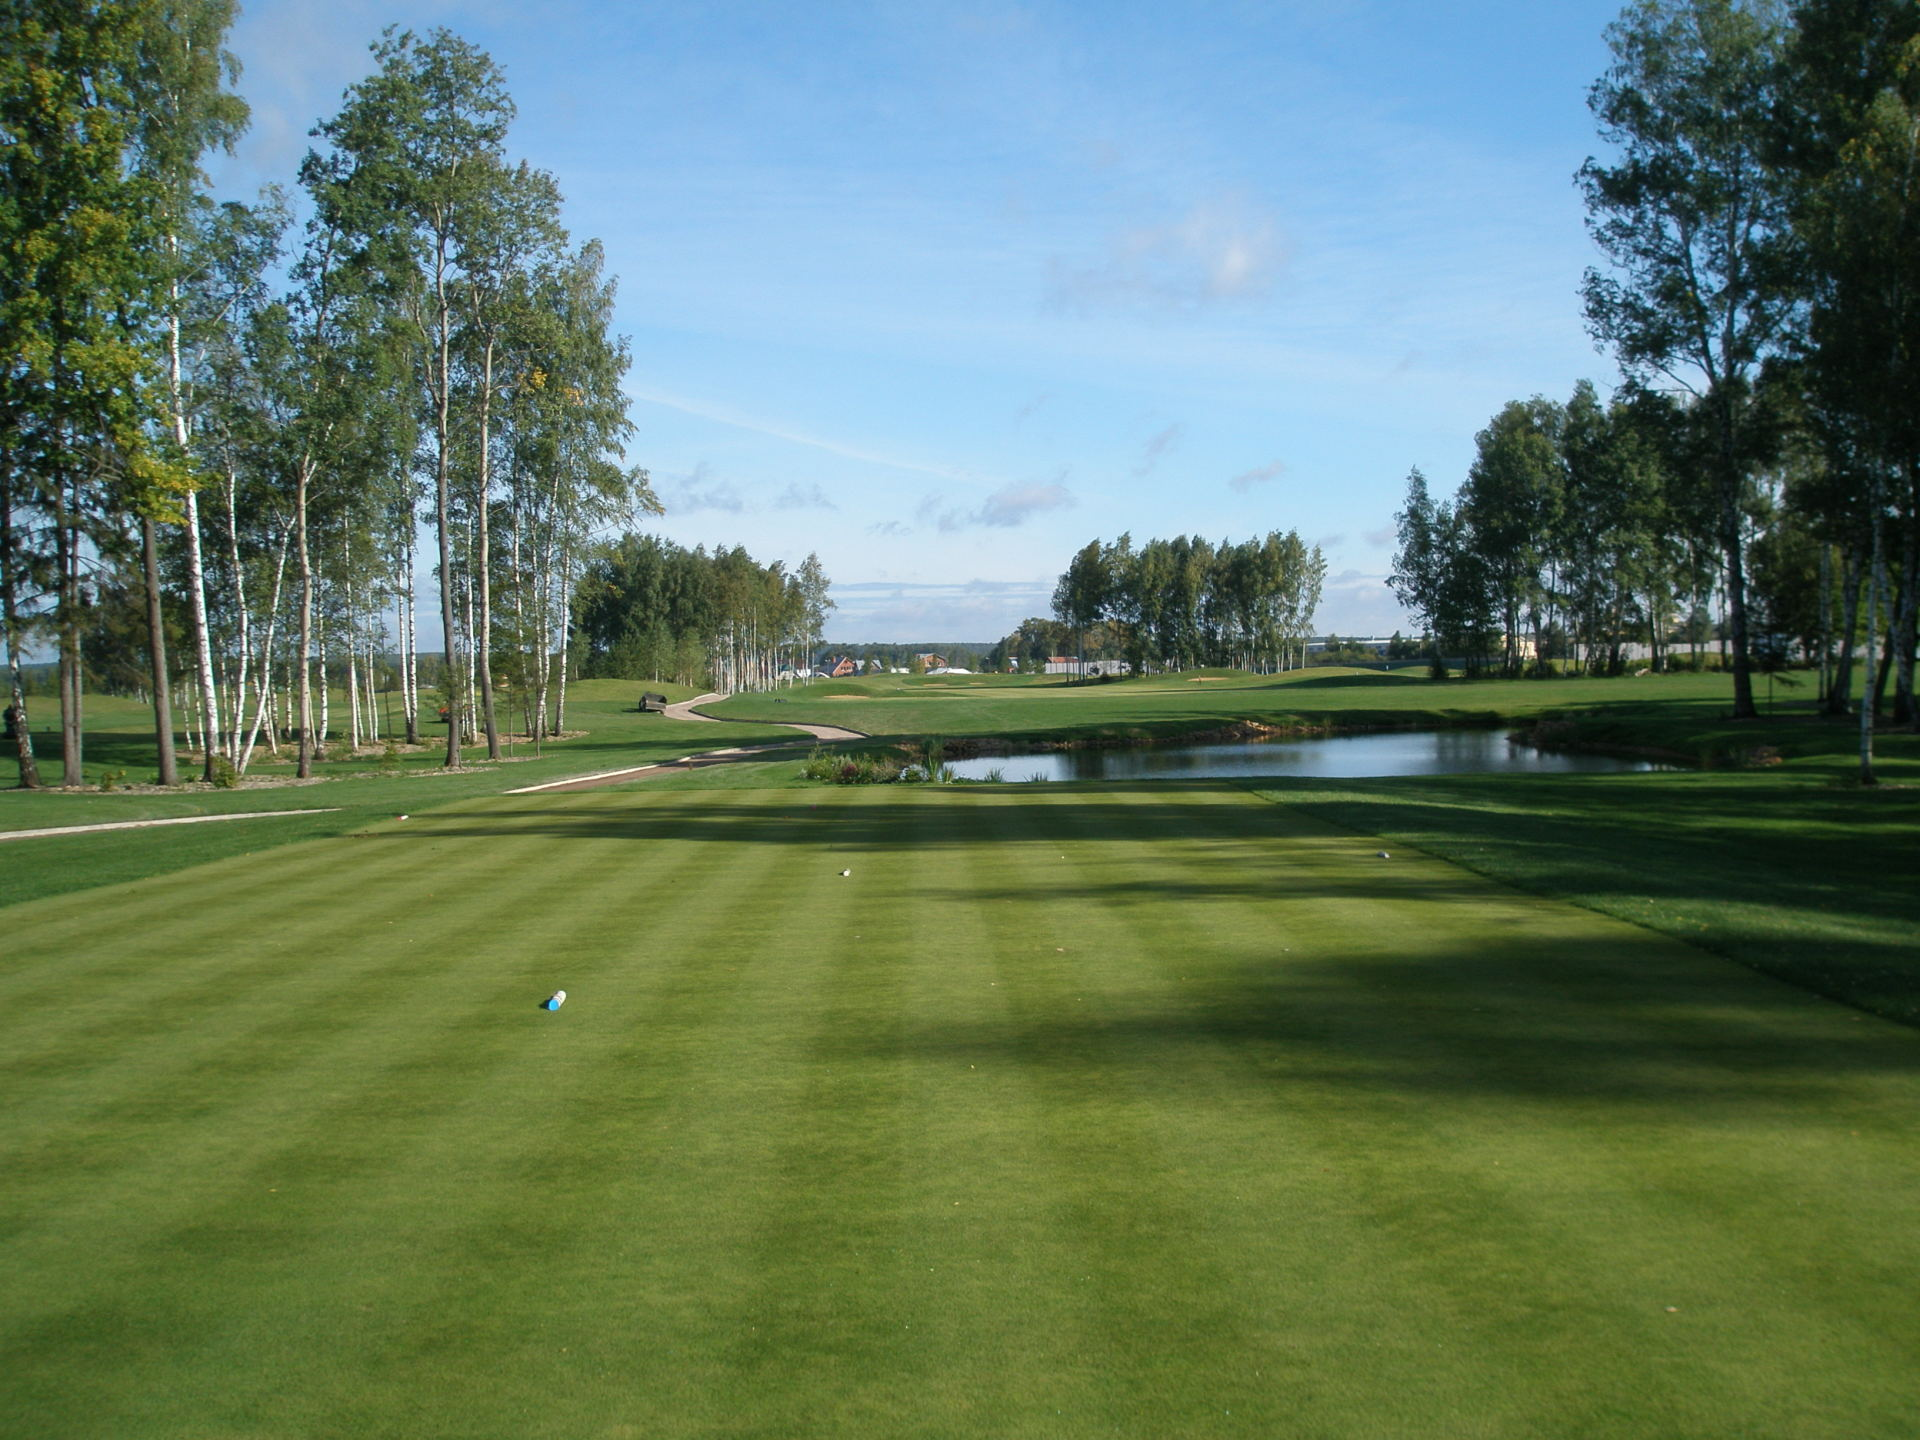 Pestovo Golf & Yacht Club